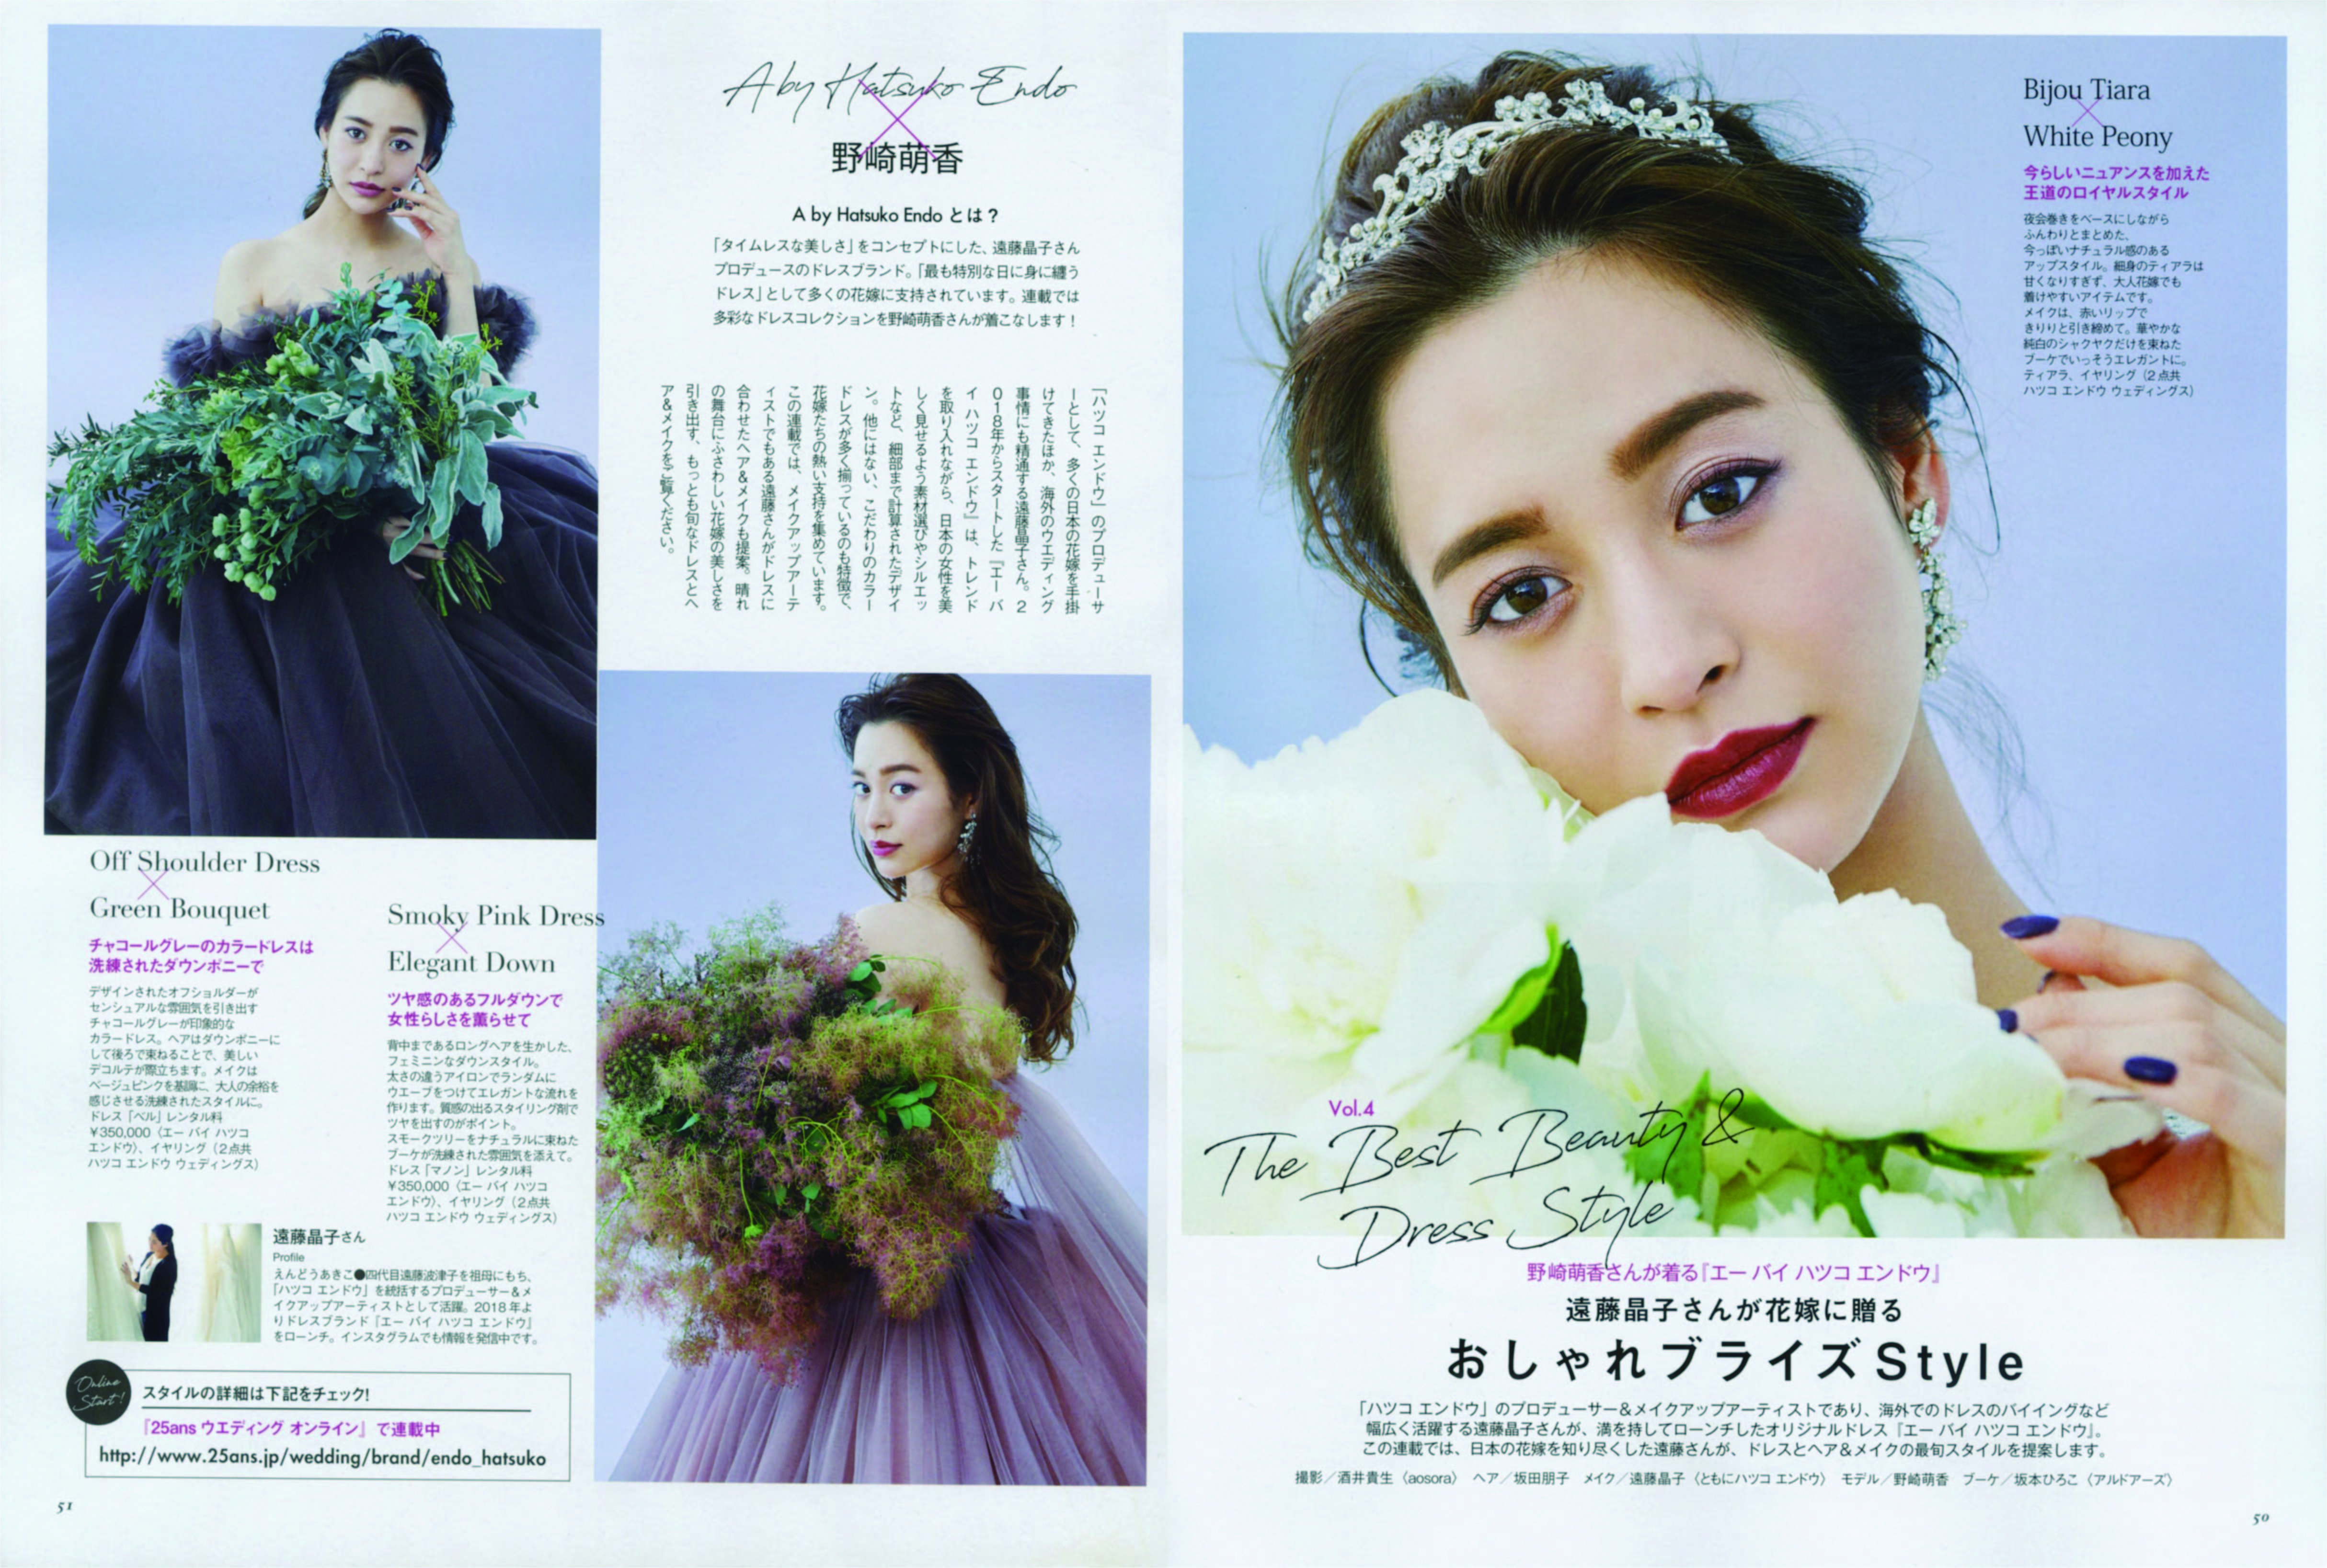 6月7日発売_25ans Wedding 2019 Summer P.50-51